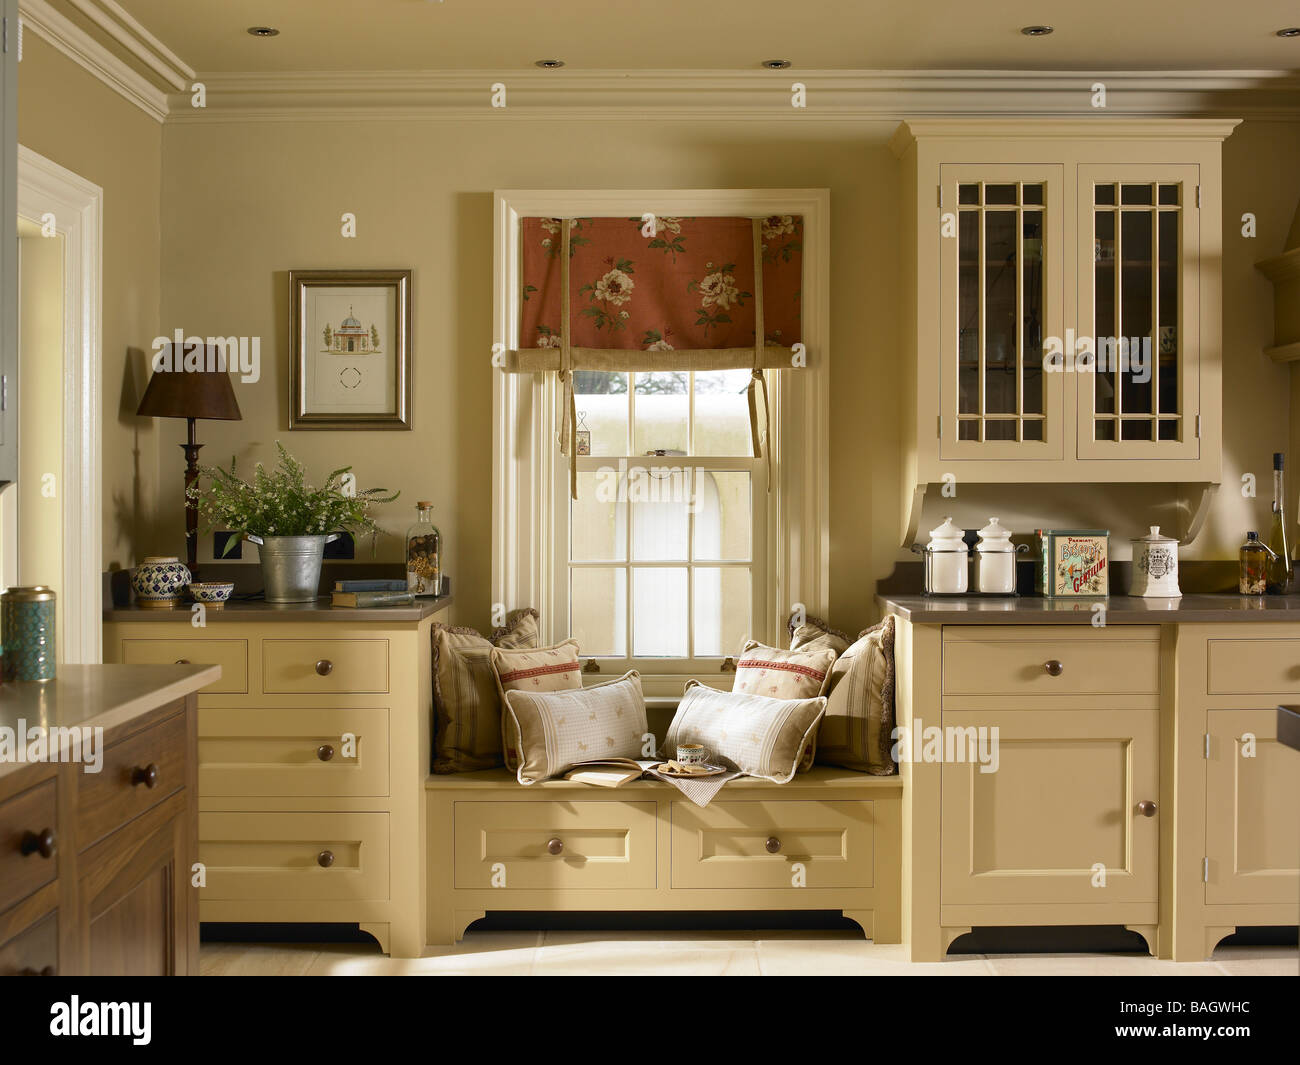 Window sitting area in a kitchen Stock Photo, Royalty Free